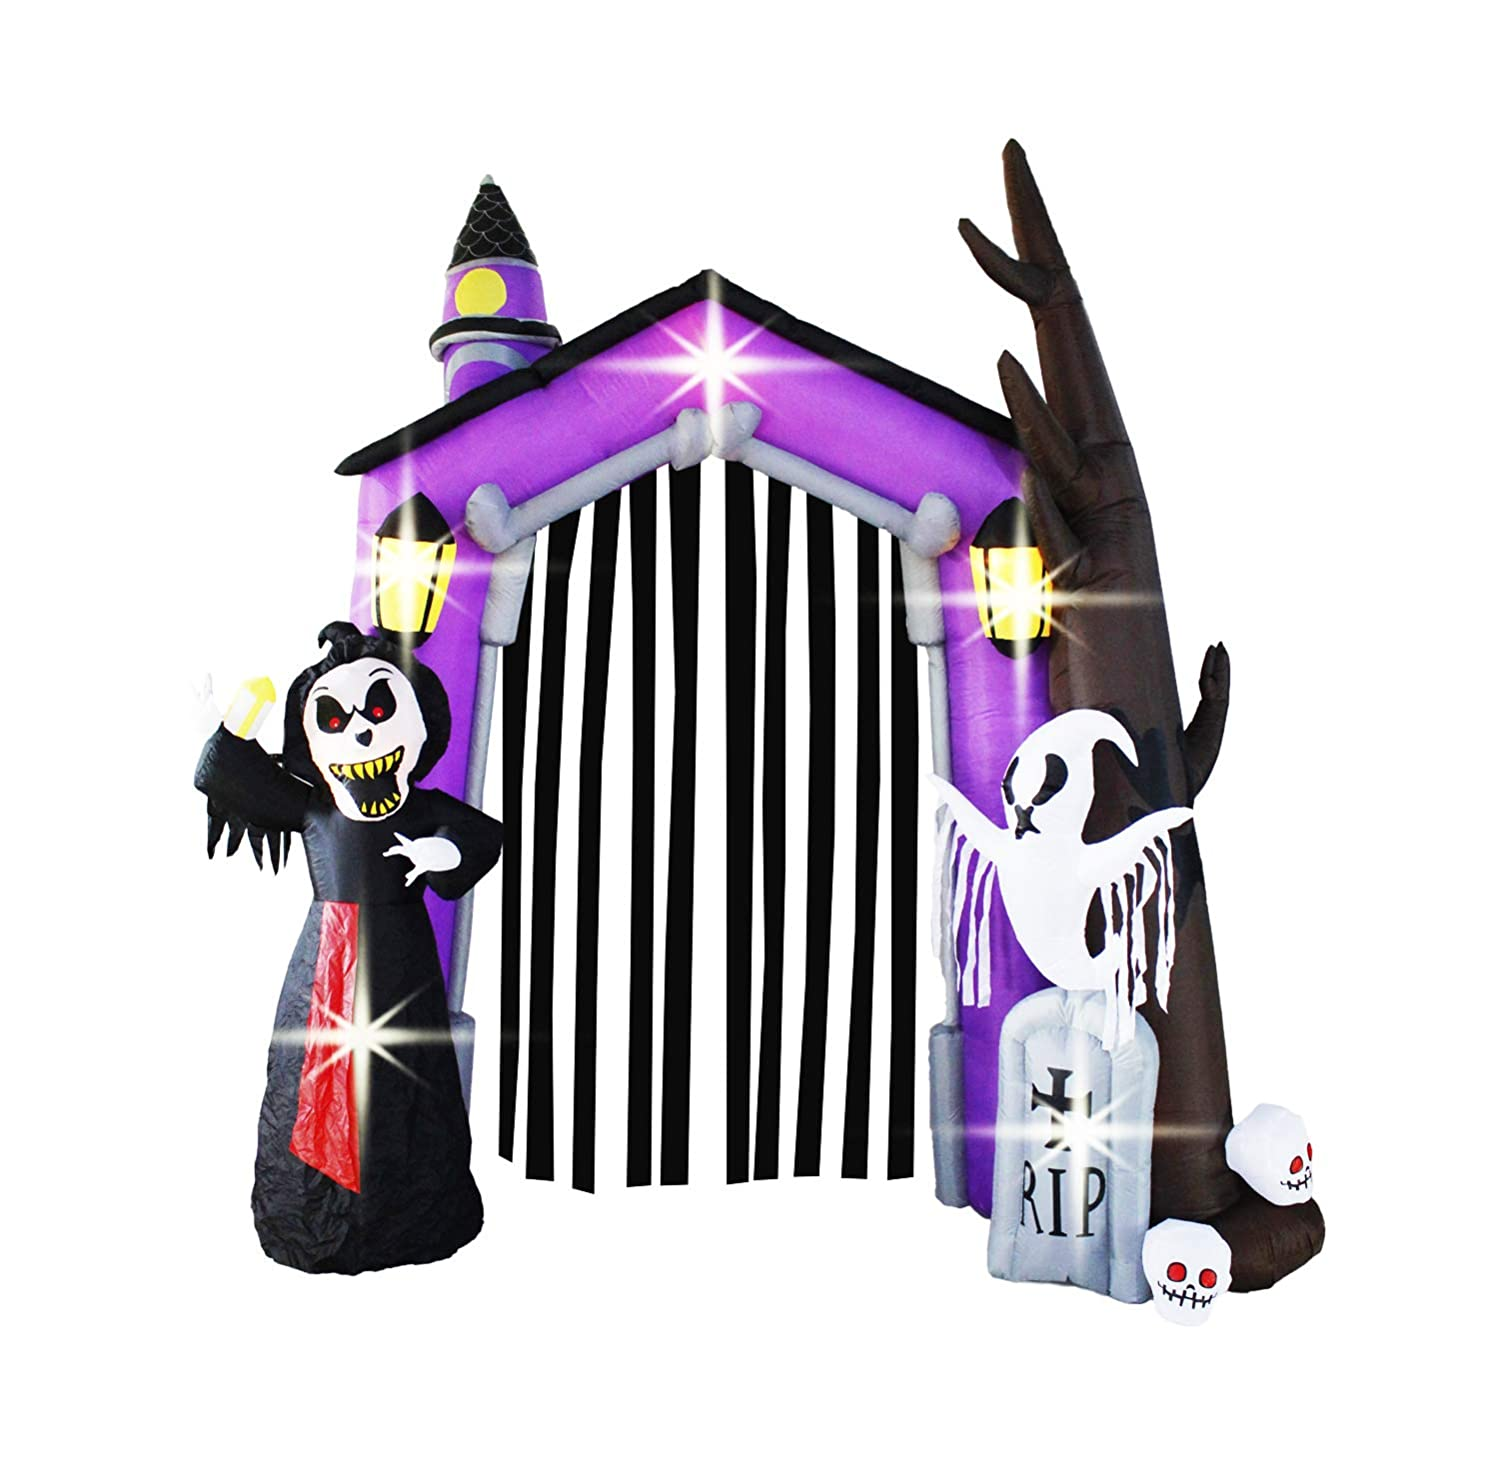 Bigjoys 9 Ft Halloween Inflatable Arch Archway Gate with Reaper Ghost Gravestone for Outdoor Home Garden CHHA1506-270